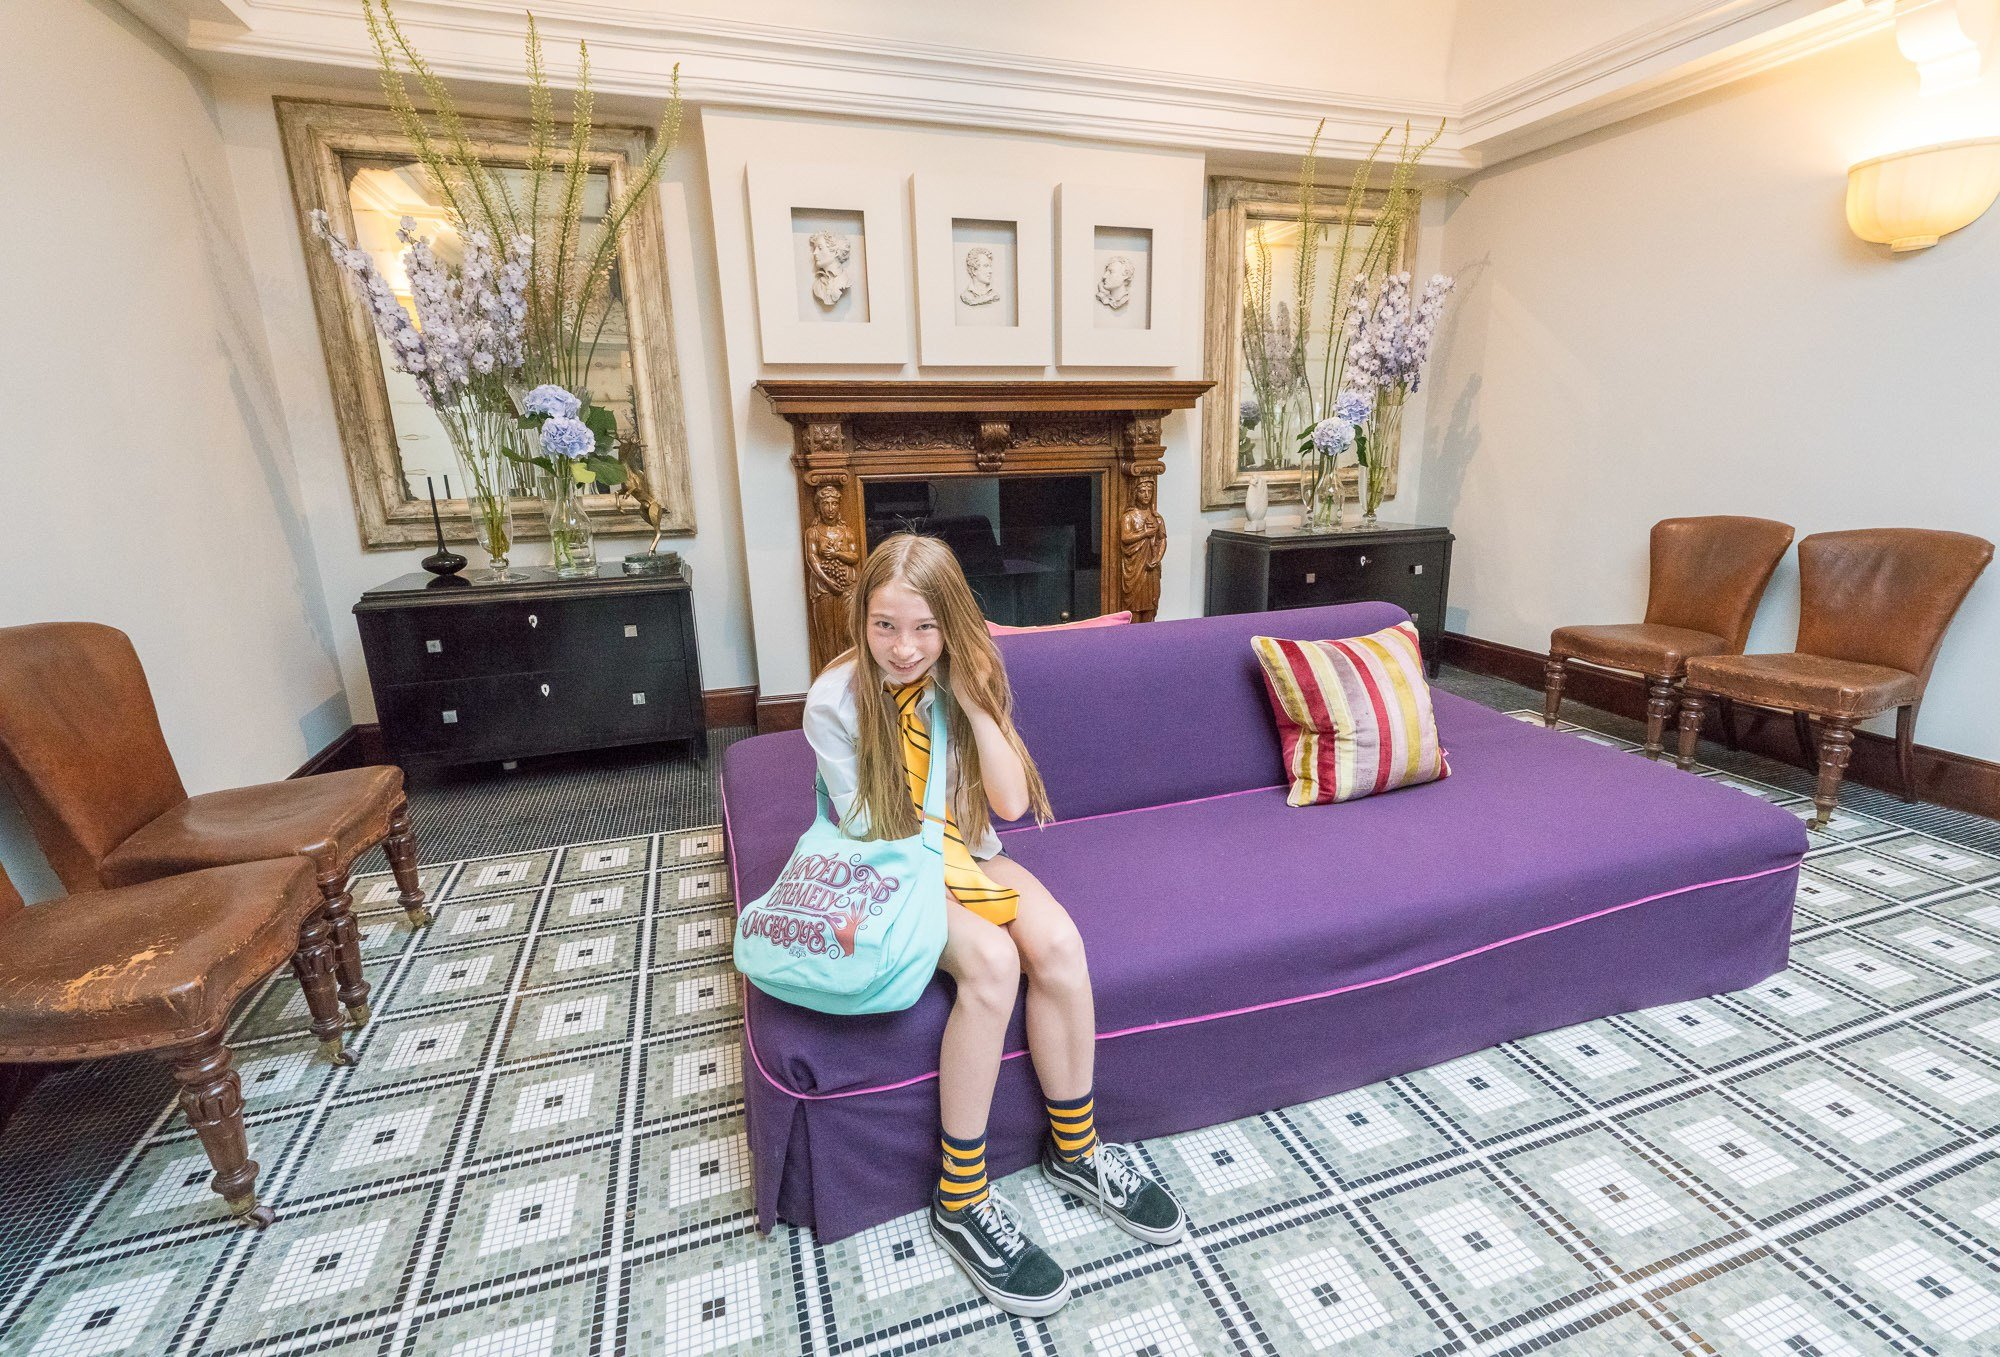 Brown's Hotel is one of London's most family-friendly hotels.